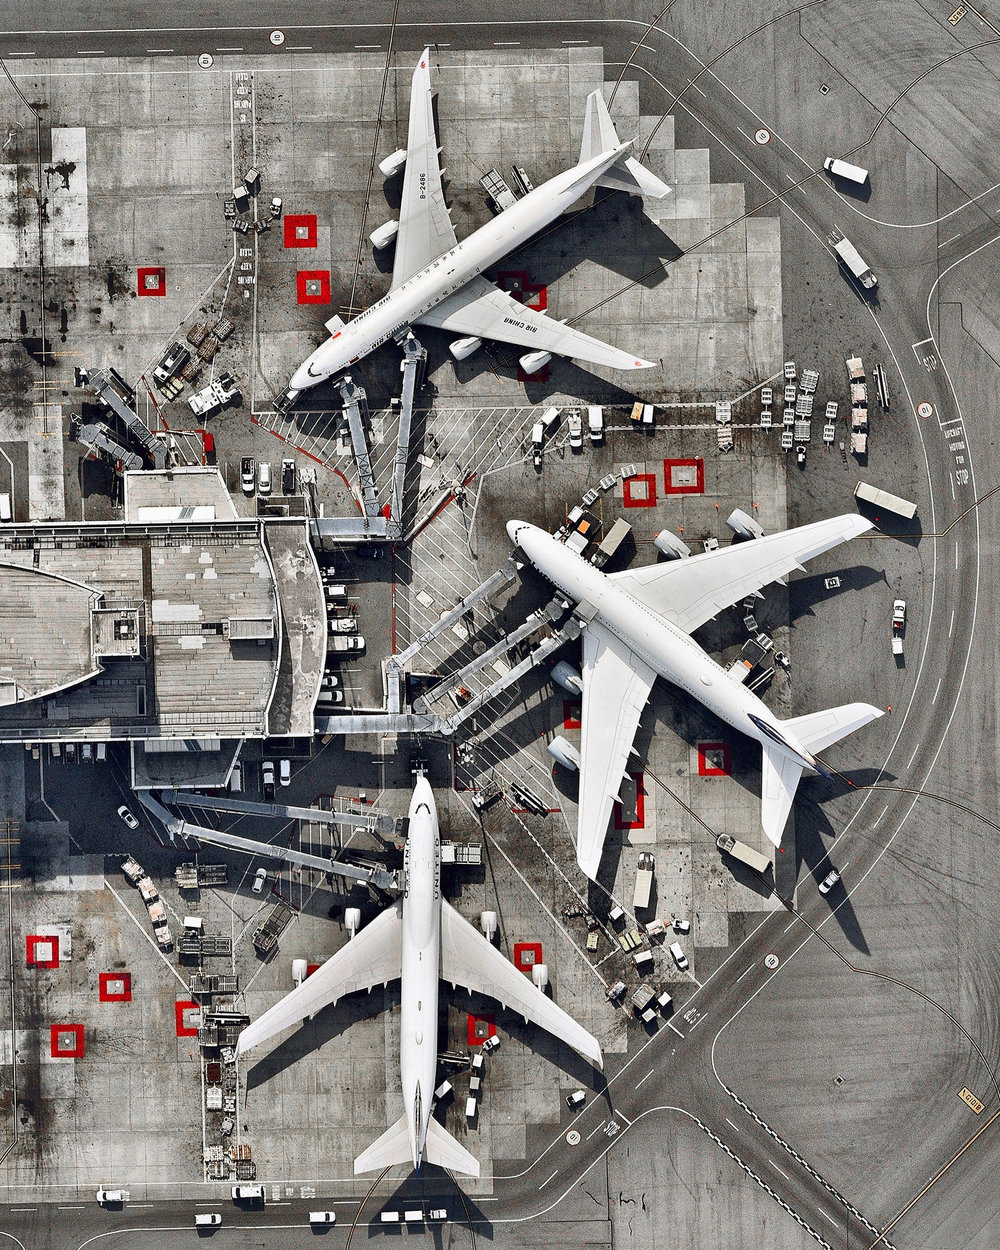 "Three massive airplanes are docked at San Francisco International Airport in California, USA. SFO is the 21st busiest airport in the world by passenger traffic, accommodating more than 50 million passengers each year.  37°37'07.2""N, 122°23'35.8""W  Source imagery: Nearmap"